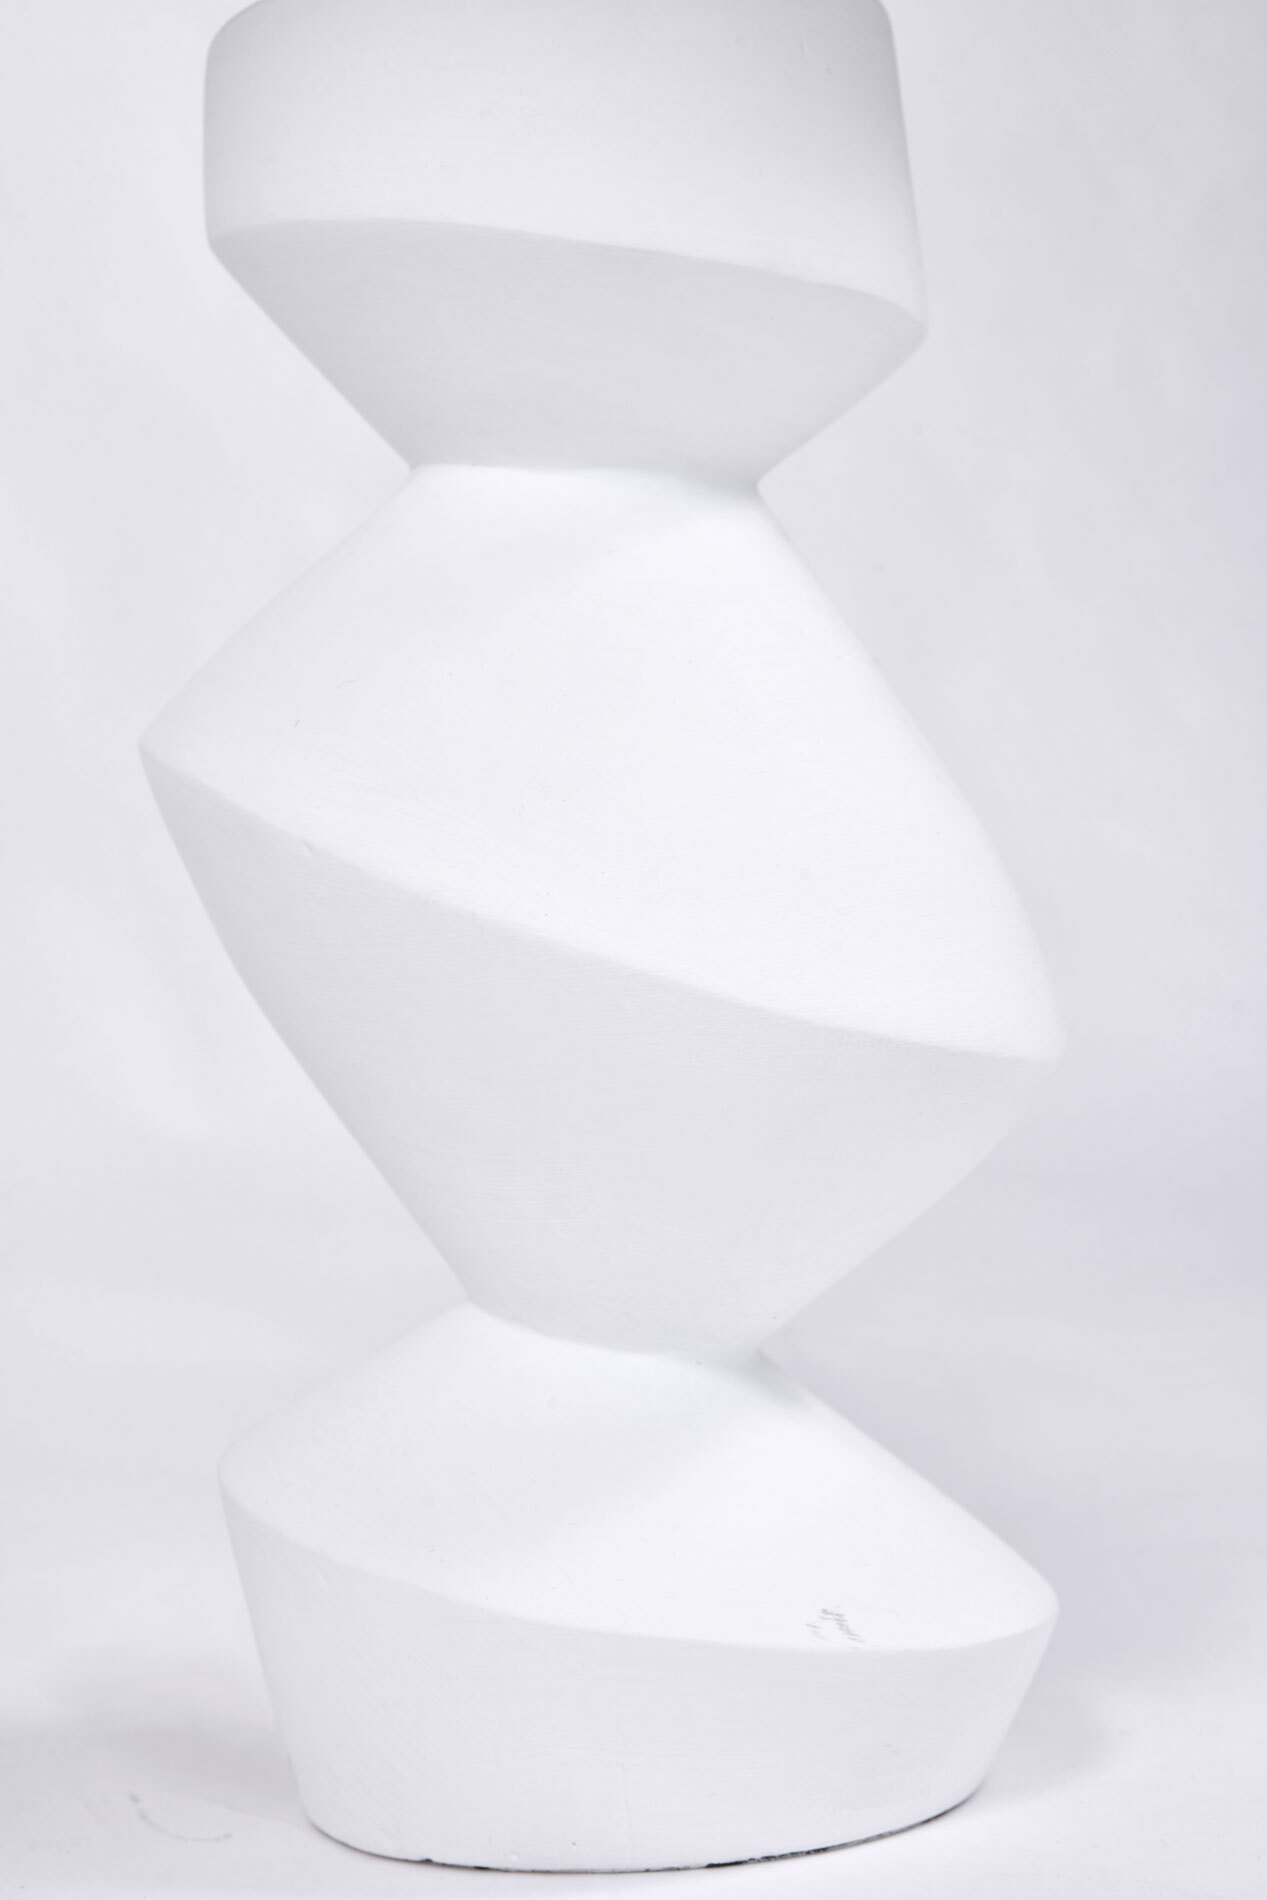 The image for Pair Savoy Lamps Natural Plaster 03